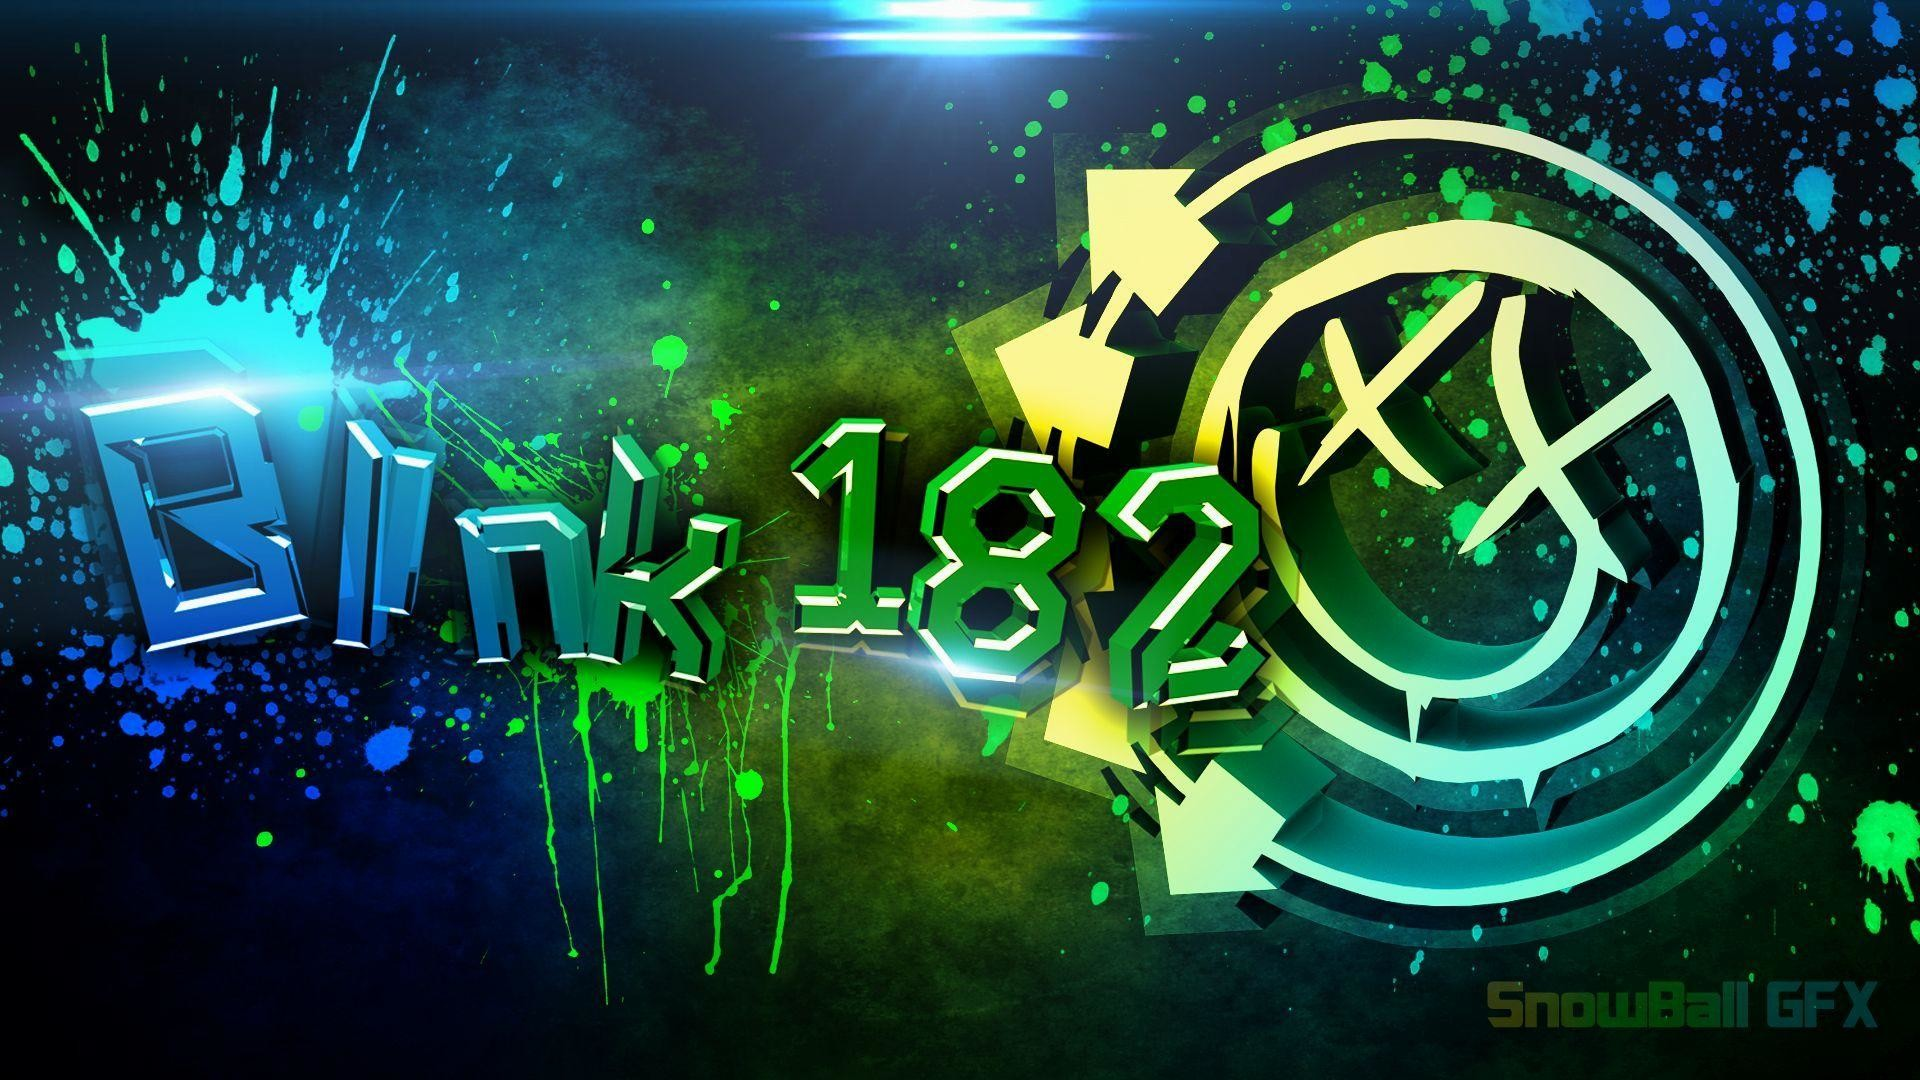 1920x1080 wallpaper.wiki-HD-Blink-182-Backgrounds-PIC-WPE0011612